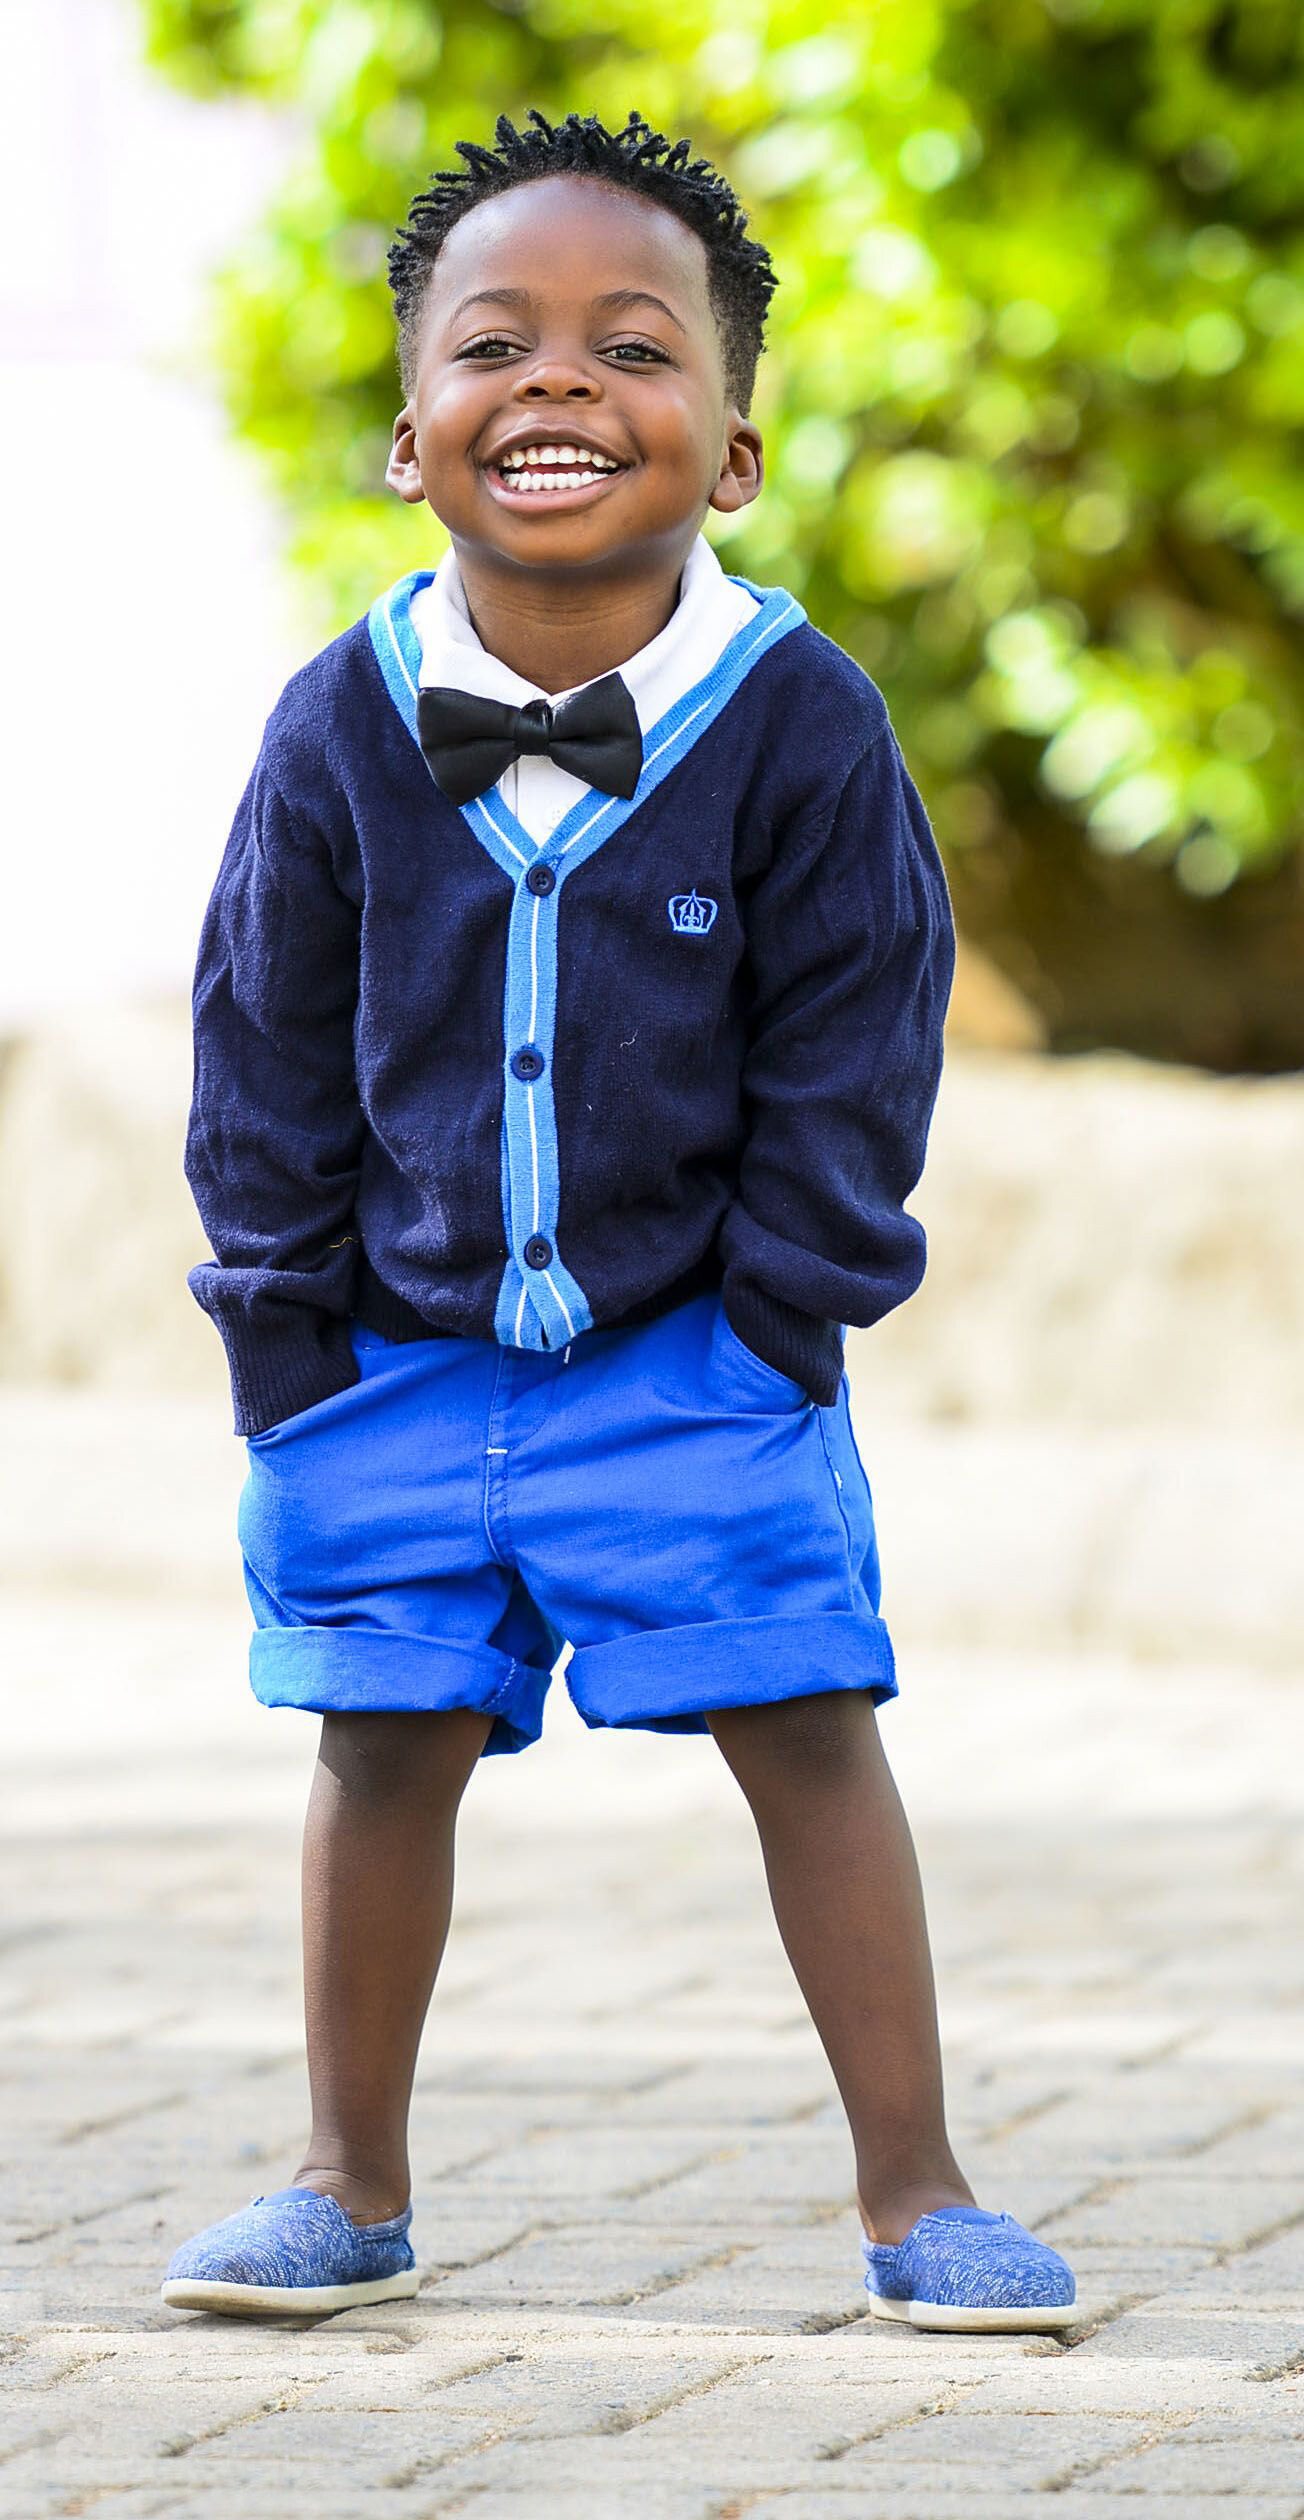 Preschool-age boy standing outside smiling, hands in pockets, wearing a bowtie, blue cardigan, blue shorts and shoes.